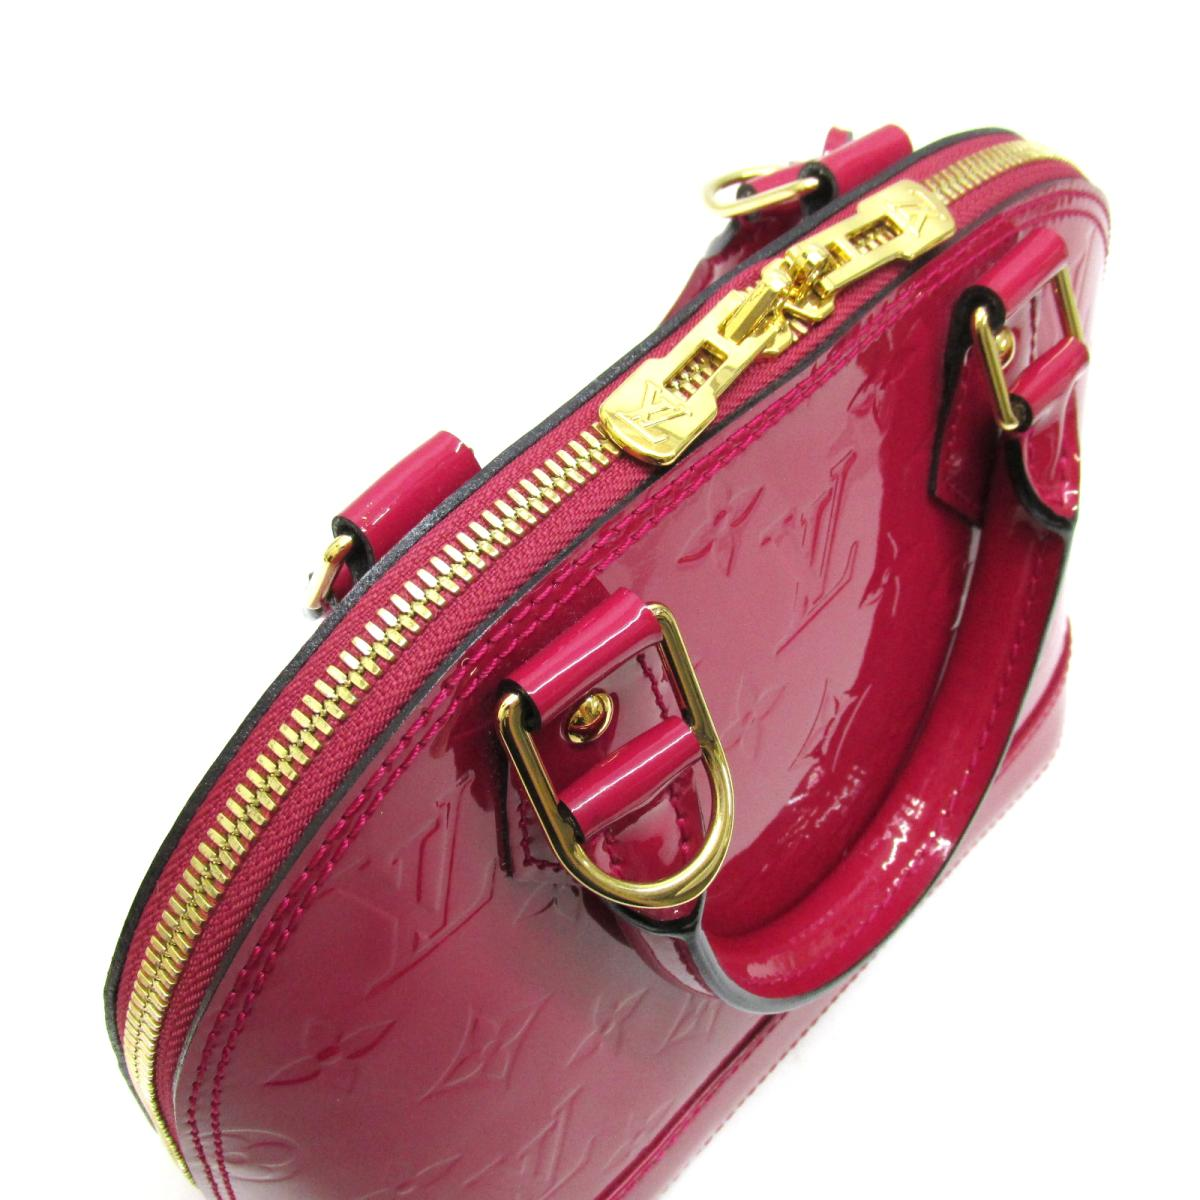 98ae34f2f102 (Free shipping) Auth LOUIS VUITTON Alma BB hand Crossbody shoulder bag  M91771 Vernis Rose Indian Used